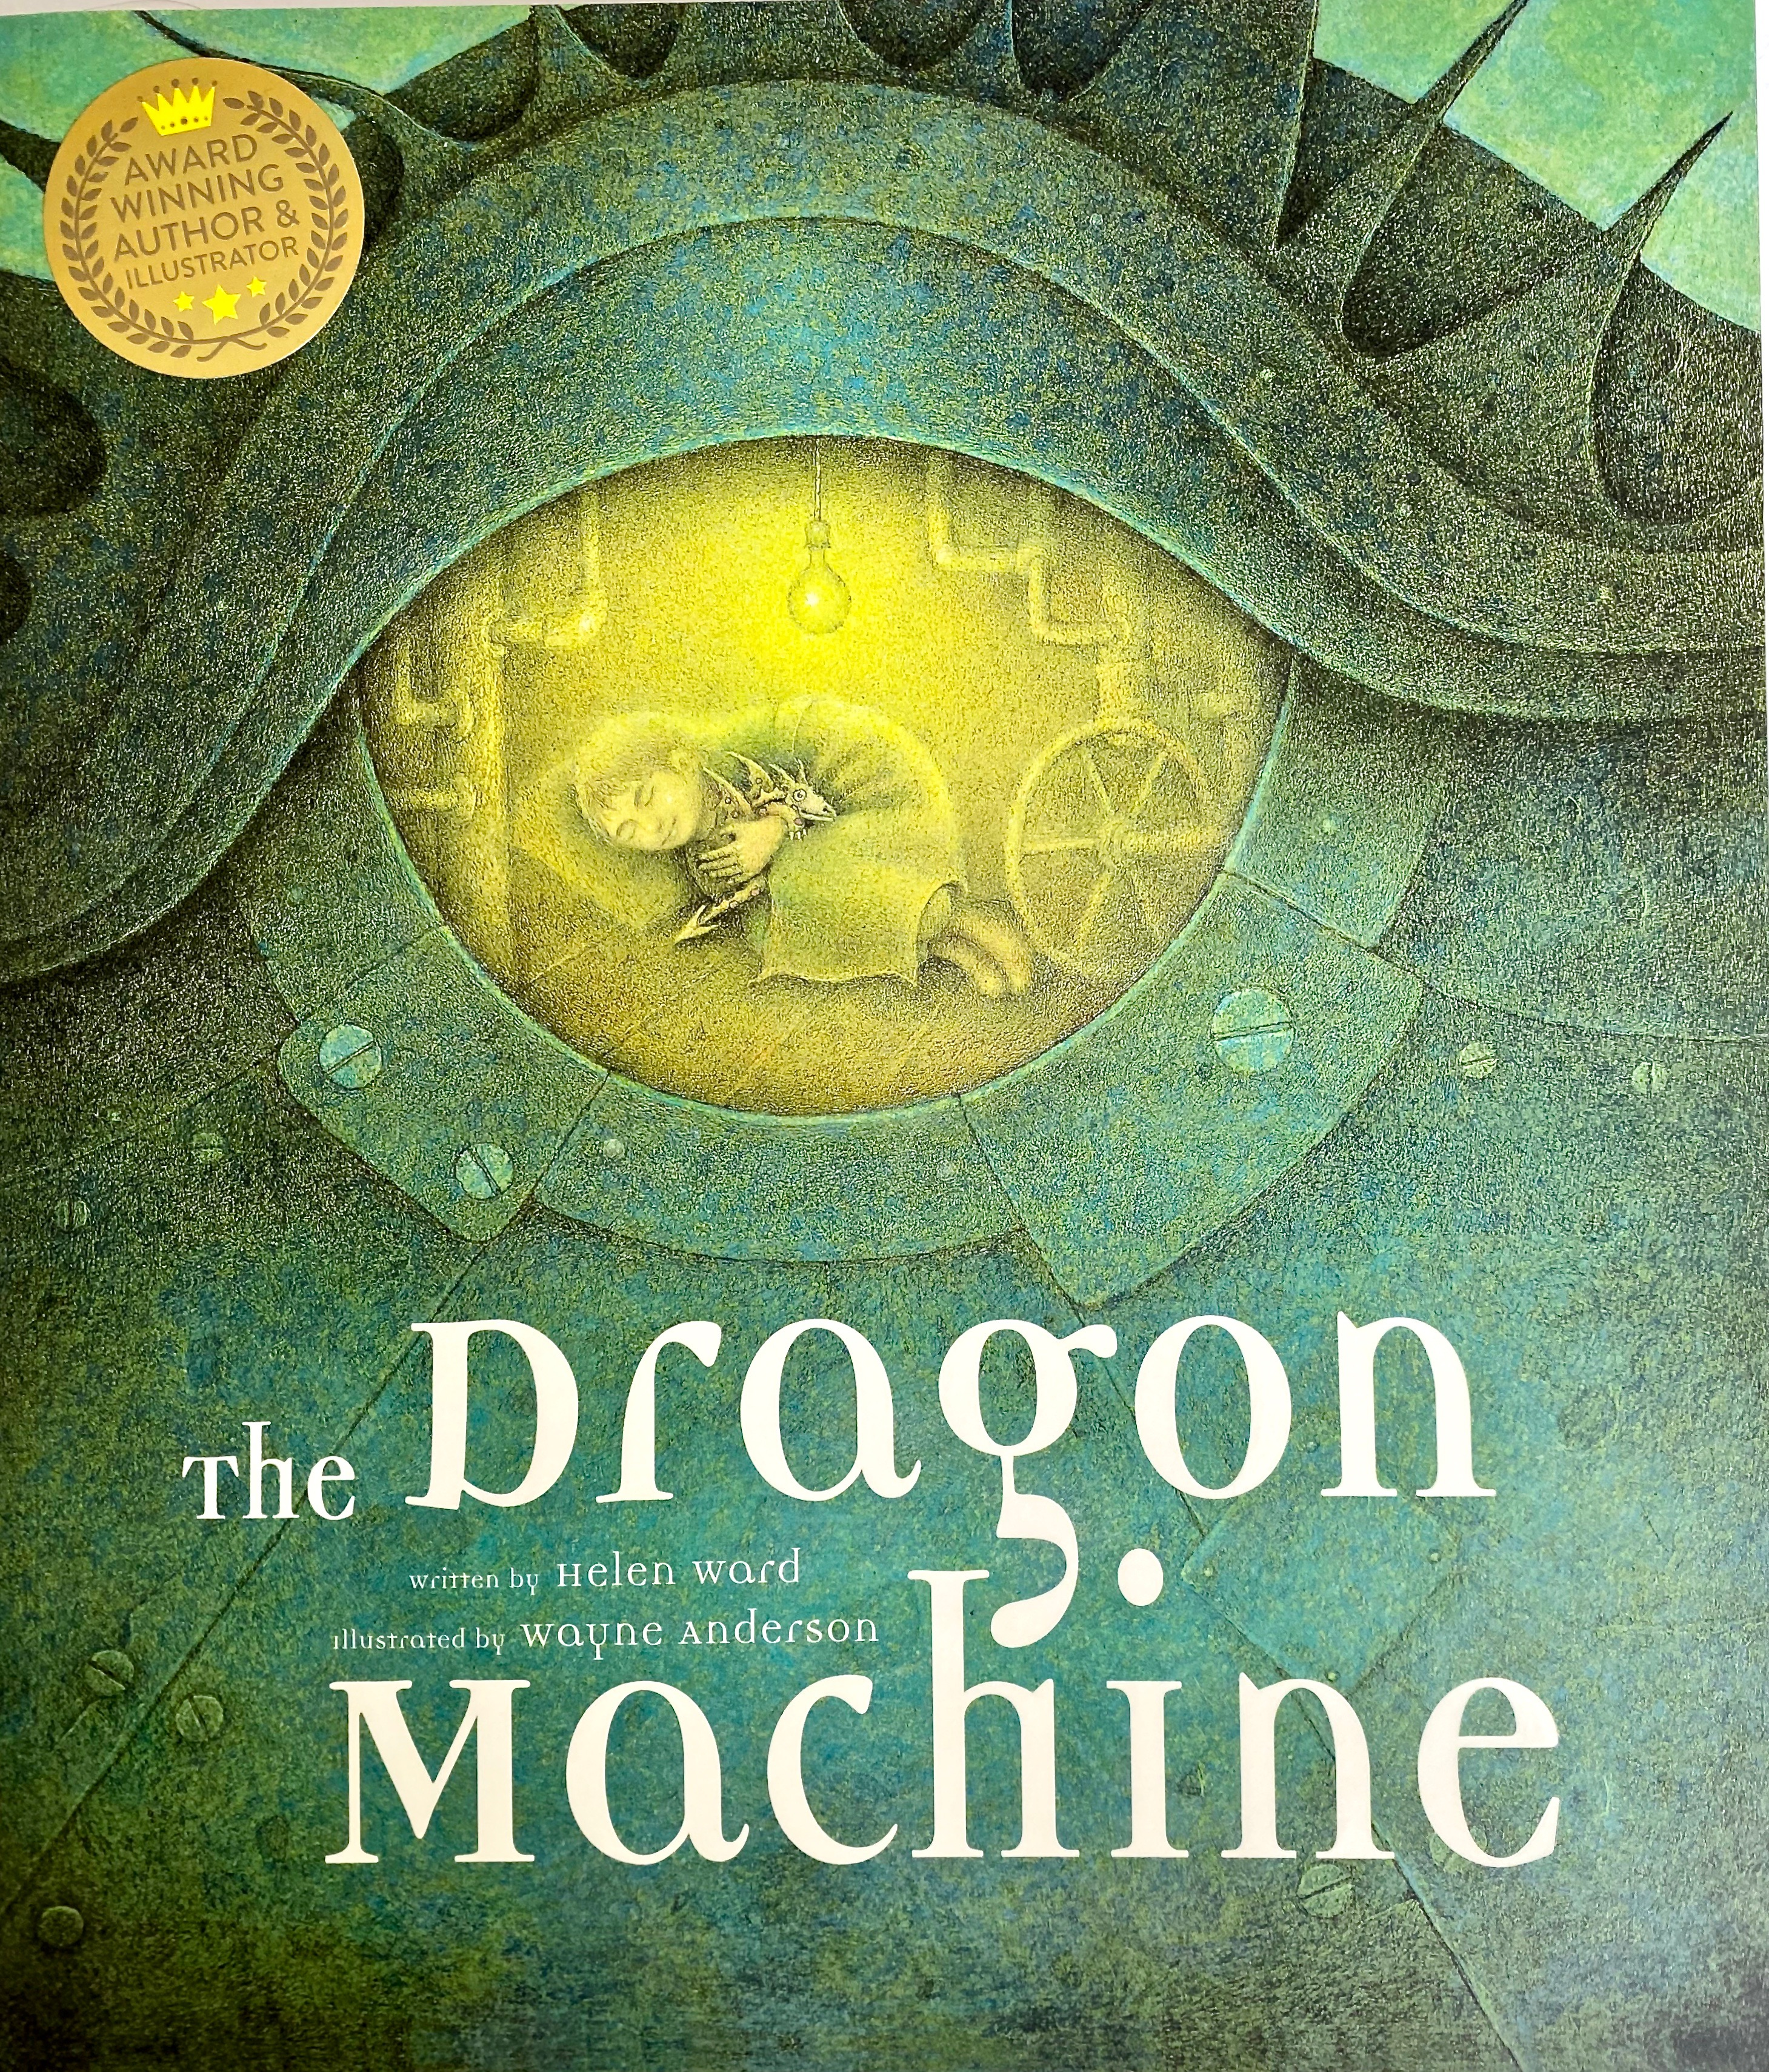 The Dragon Machine by Helen Ward, illustrated by Wayne Anderson (Templar)